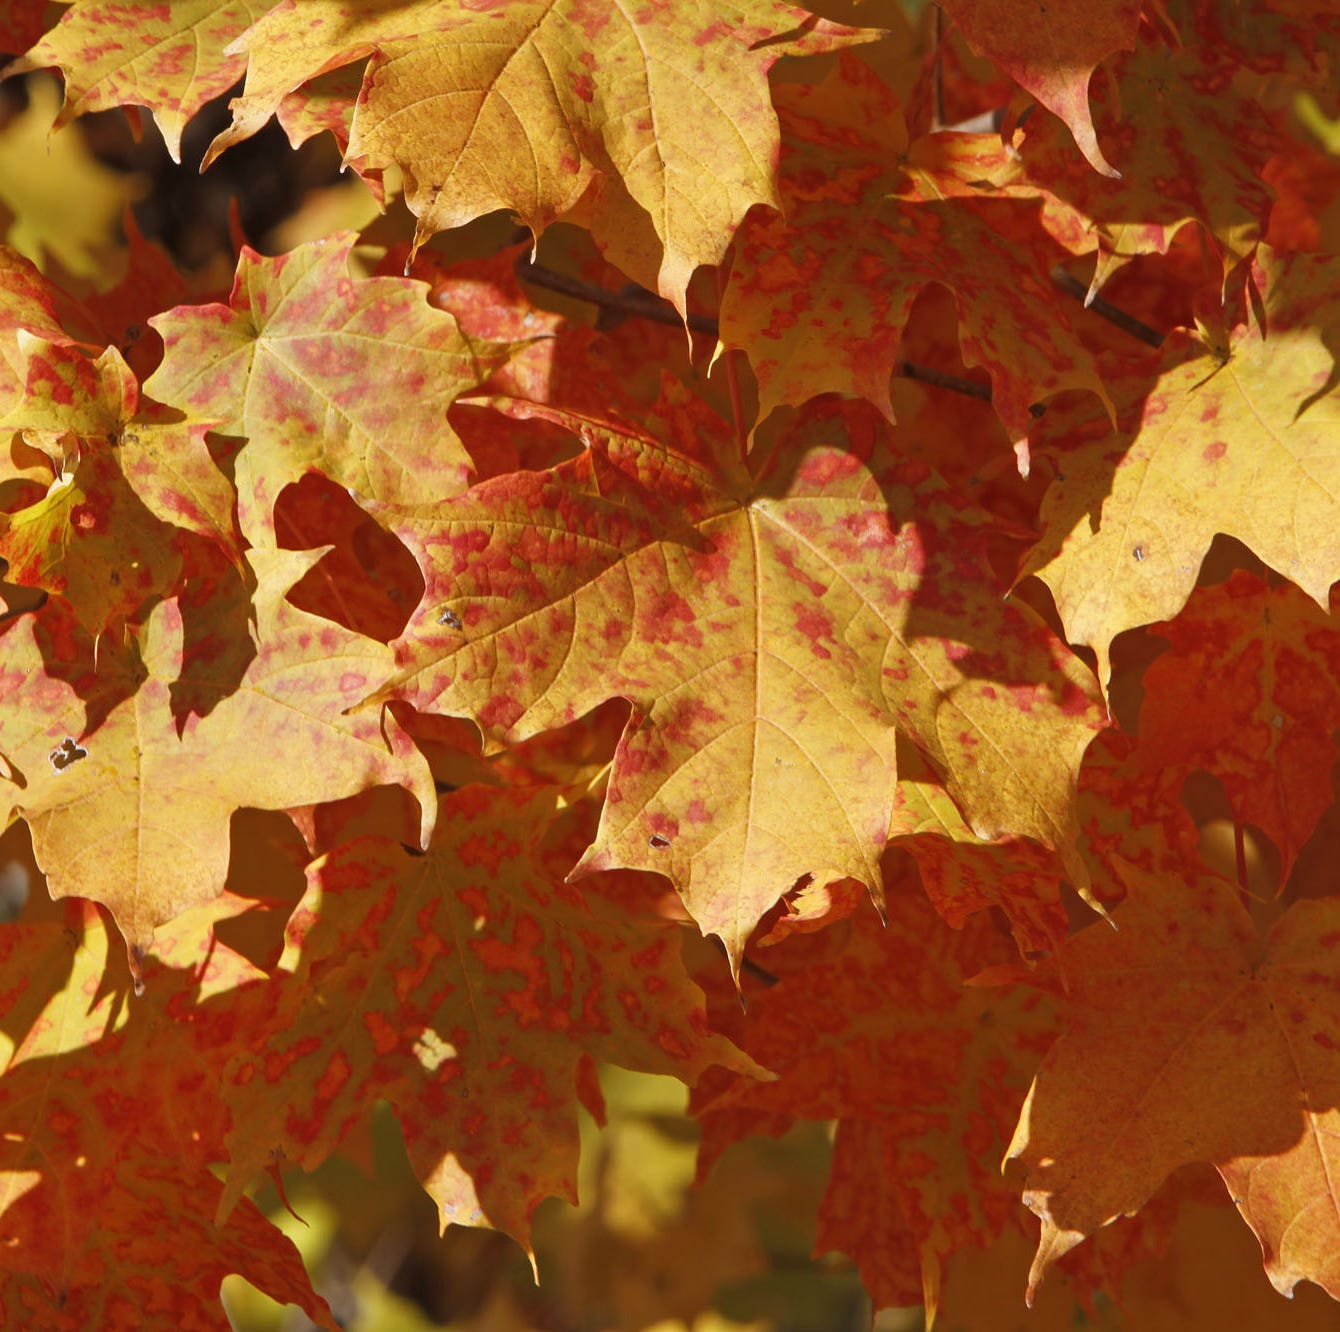 Saturday is the first day of fall – and it will finally feel like it